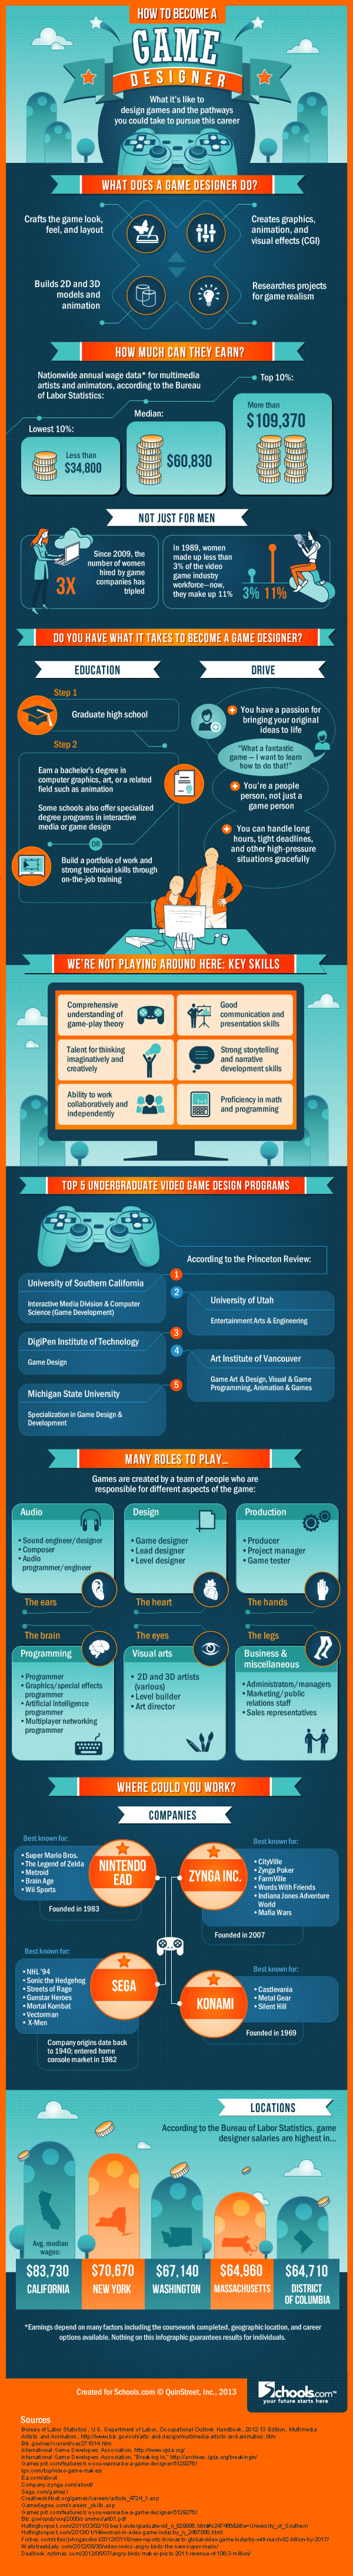 How-to-become-a-game-designer